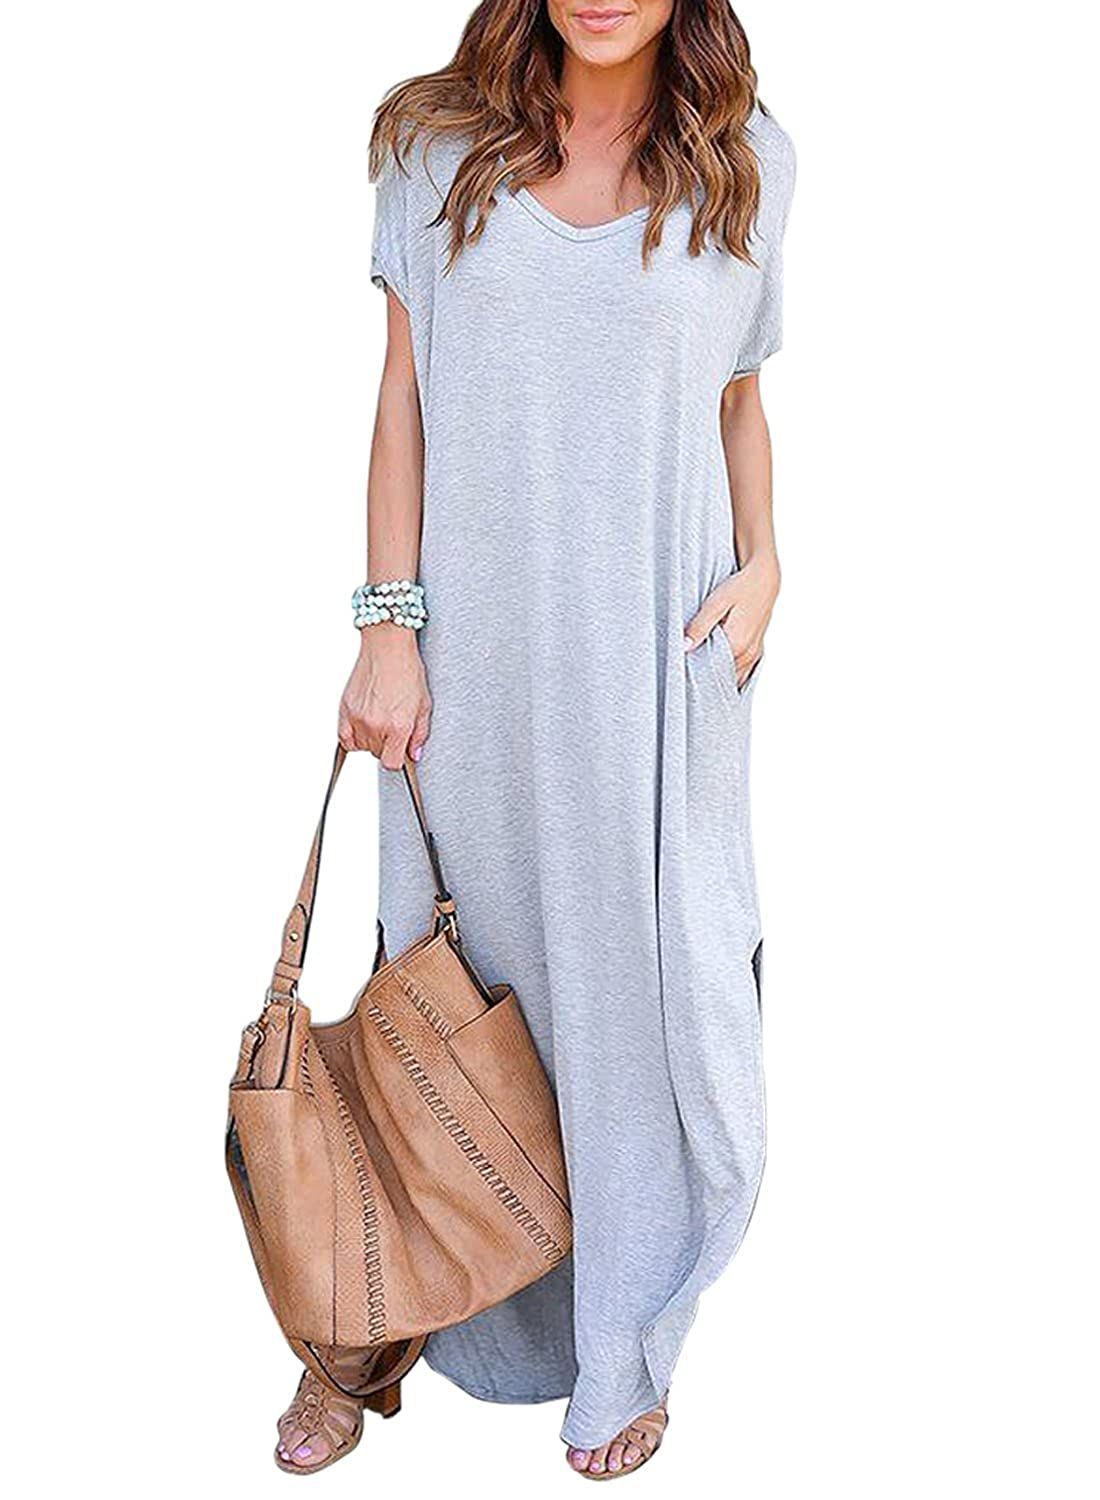 537213d4a74c ... wonderfully spring and summer wear. NOT SHEER! The simple solid color maxi  dress features sexy v neck, short sleeves , side split, casual loose long  ...